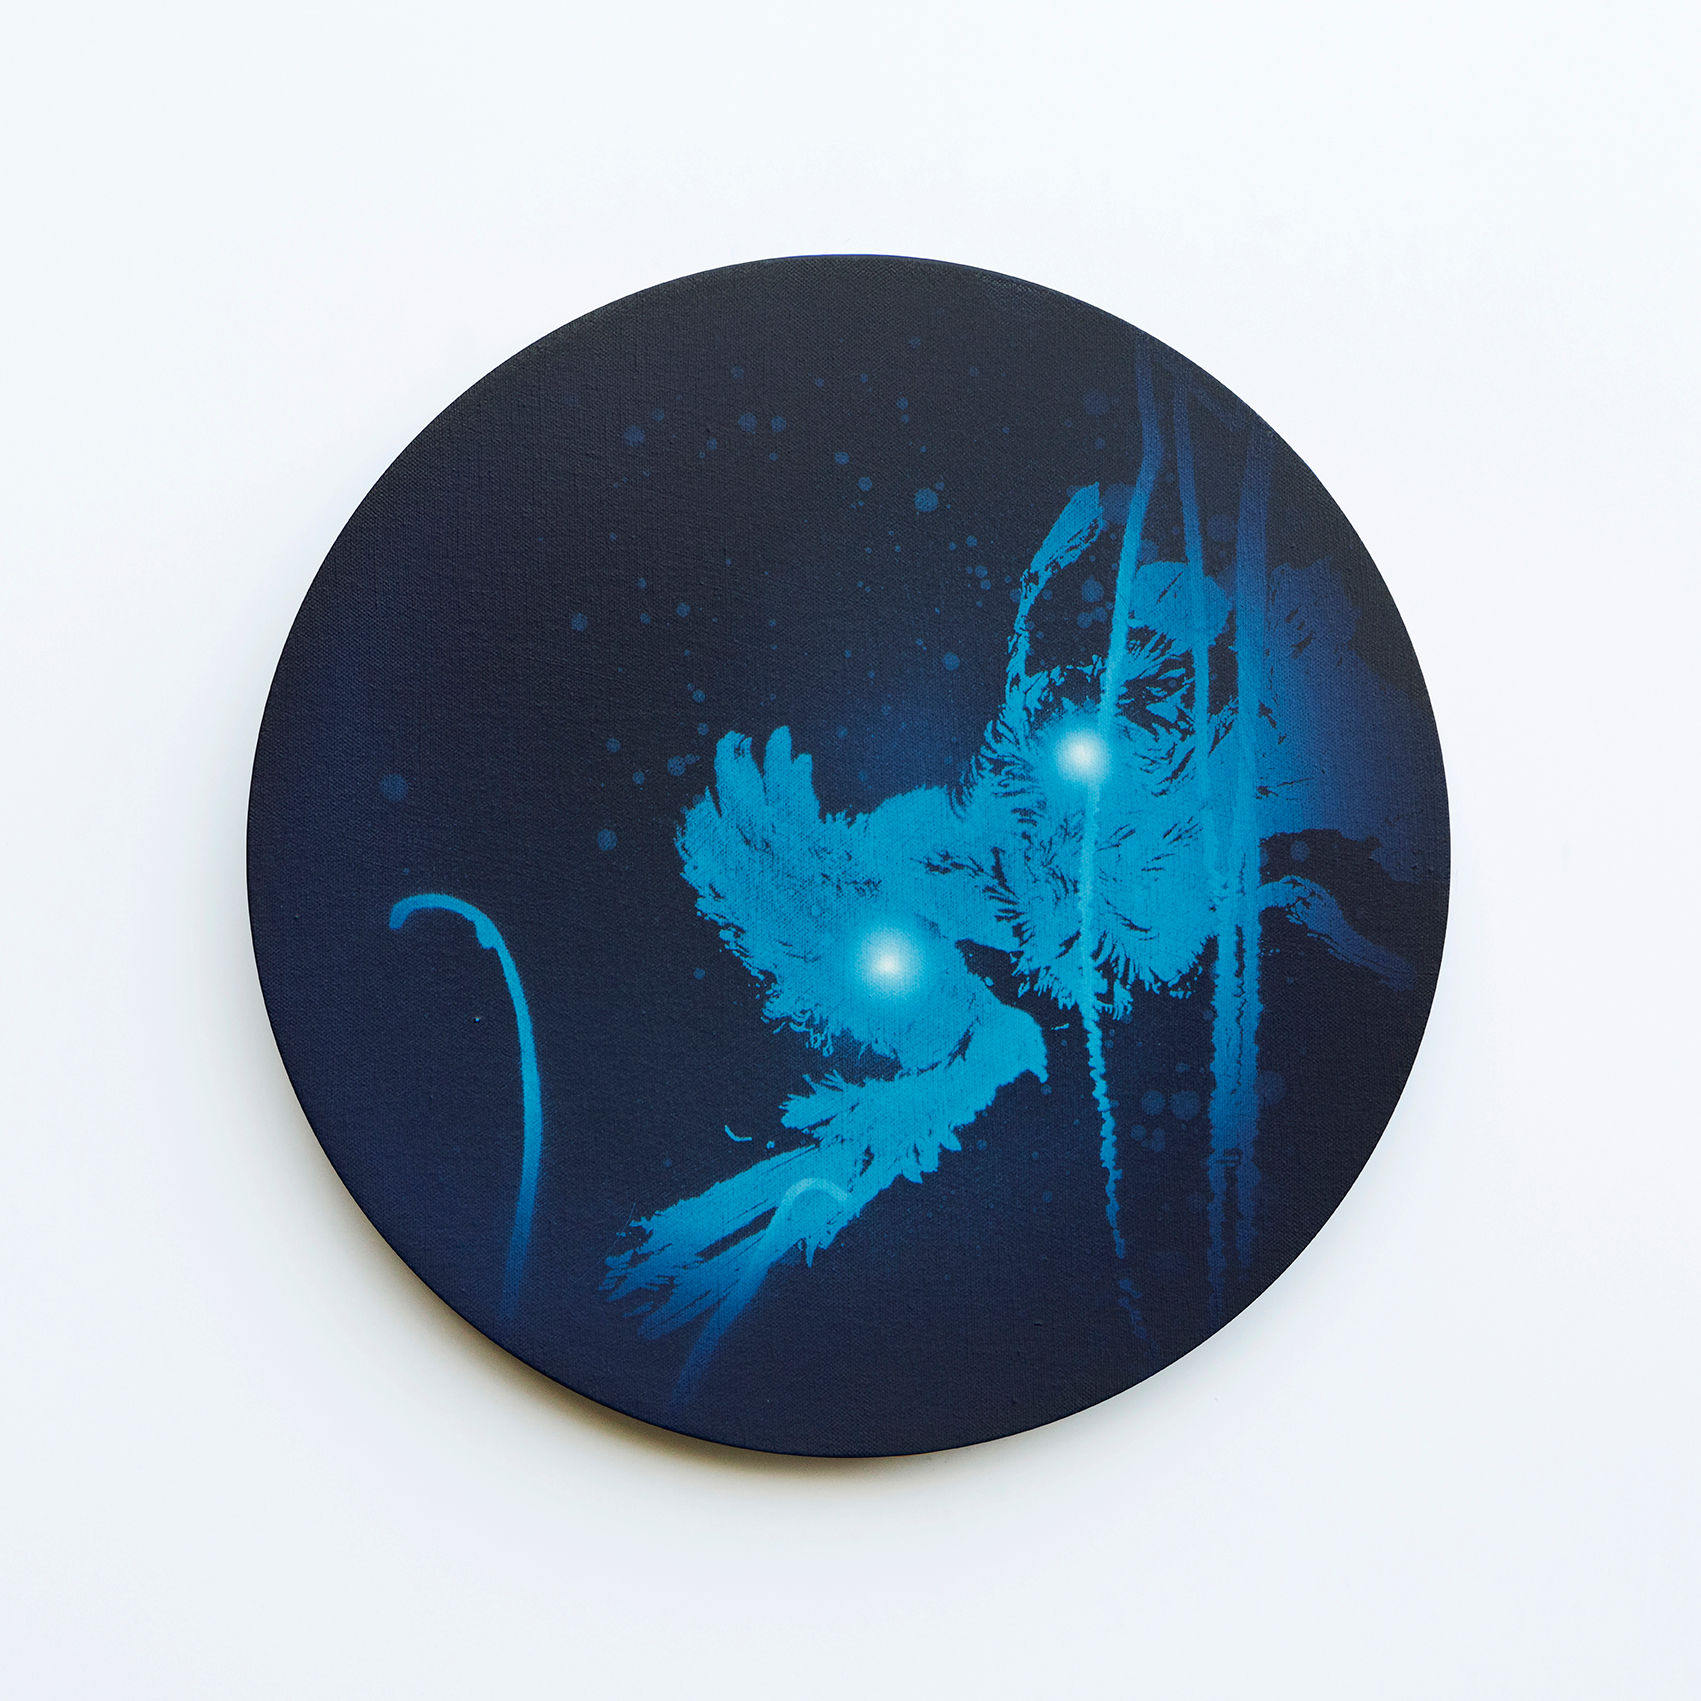 WATERSCAPE_내 안의 바깥 10, Diameter 40cm, Traditional pigment, water-print, water-drawing on canvas, 2018